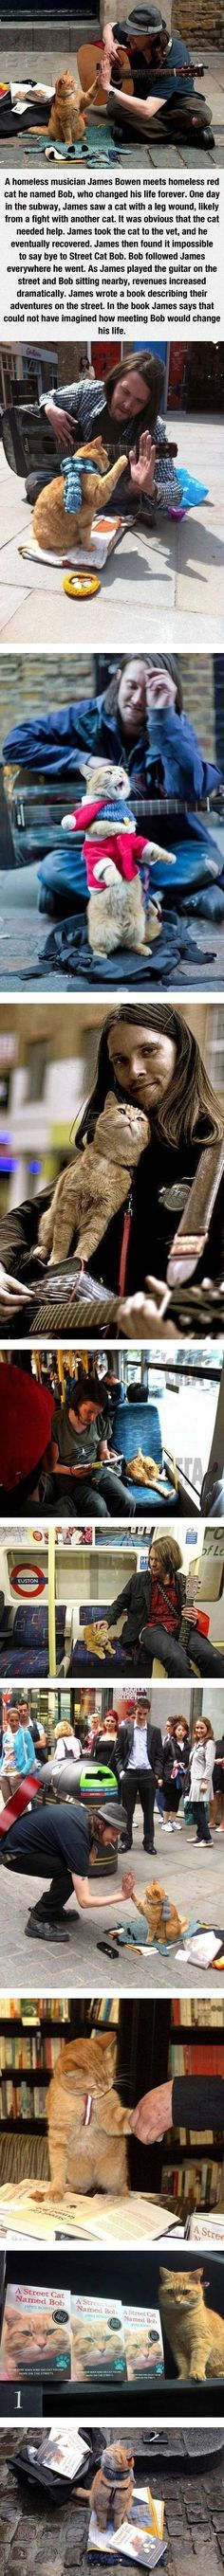 A Homeless Musician And His Cat Pictures, Photos, and Images for Facebook, Tumblr, Pinterest, and Twitter